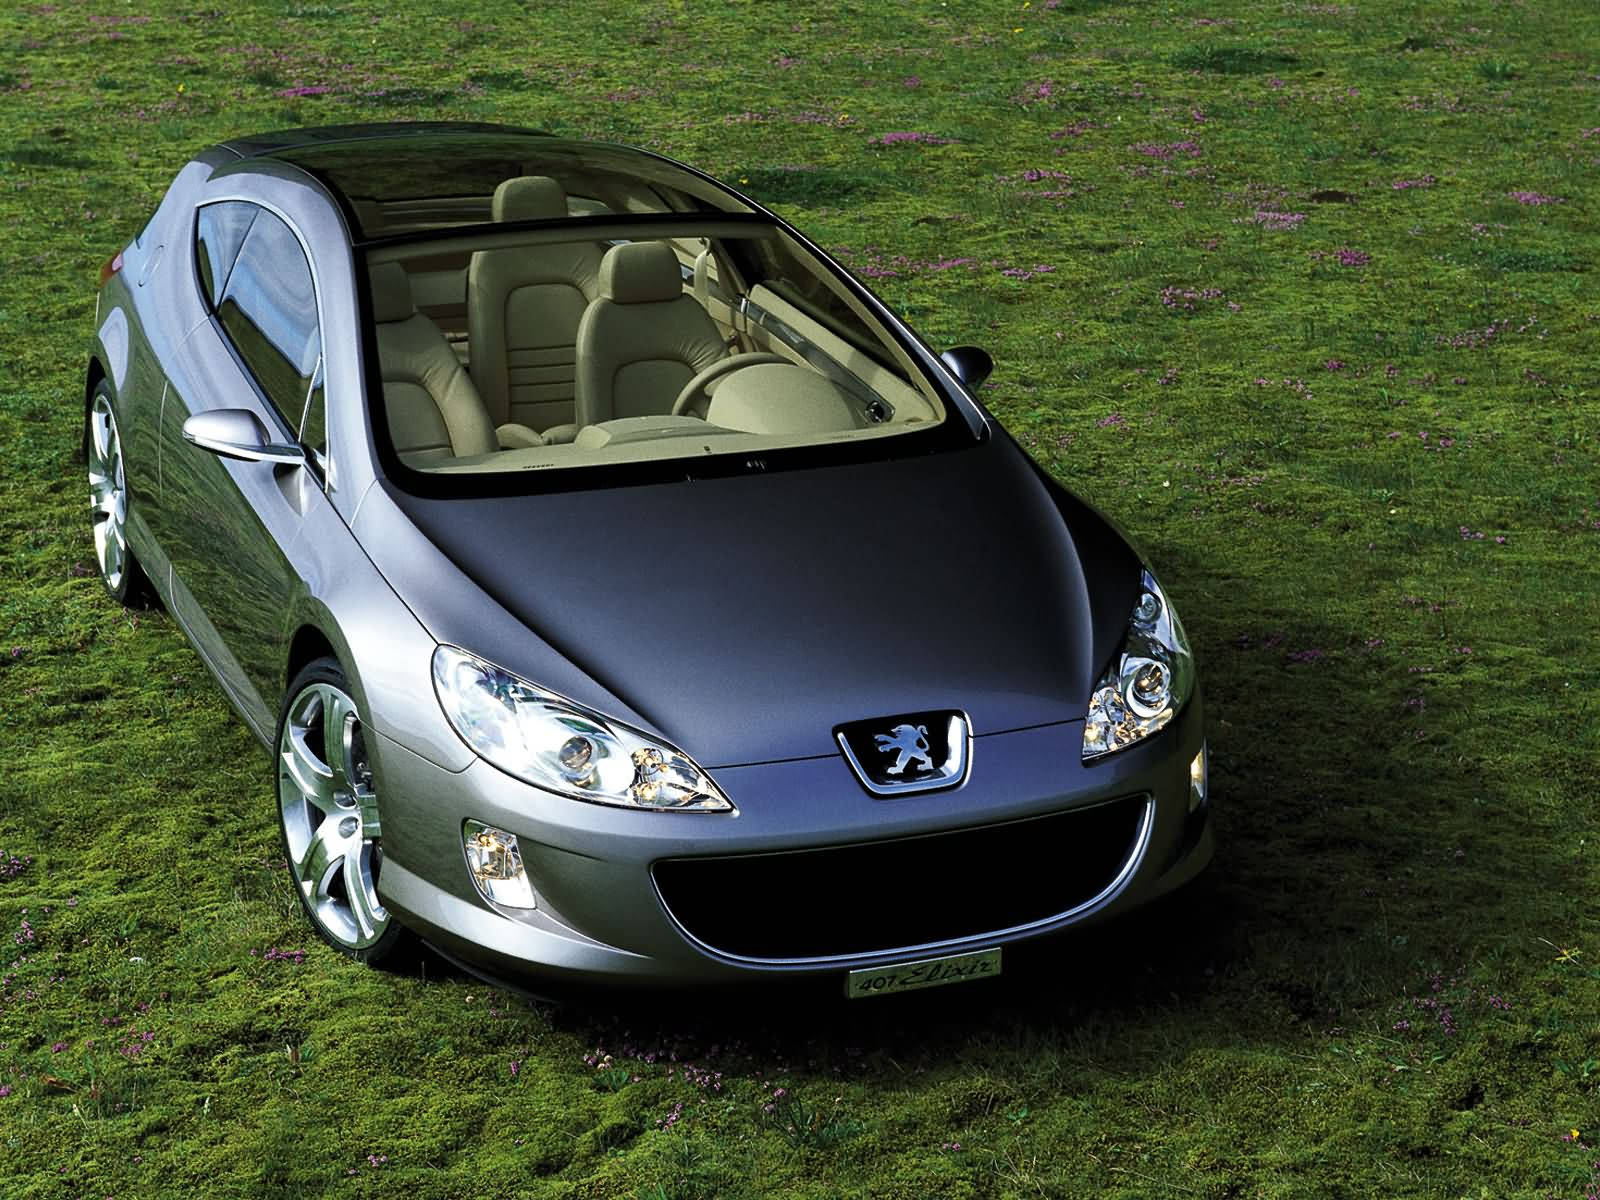 http://www.carsbase.com/photo/Peugeot-407_mp40_pic_1996.jpg